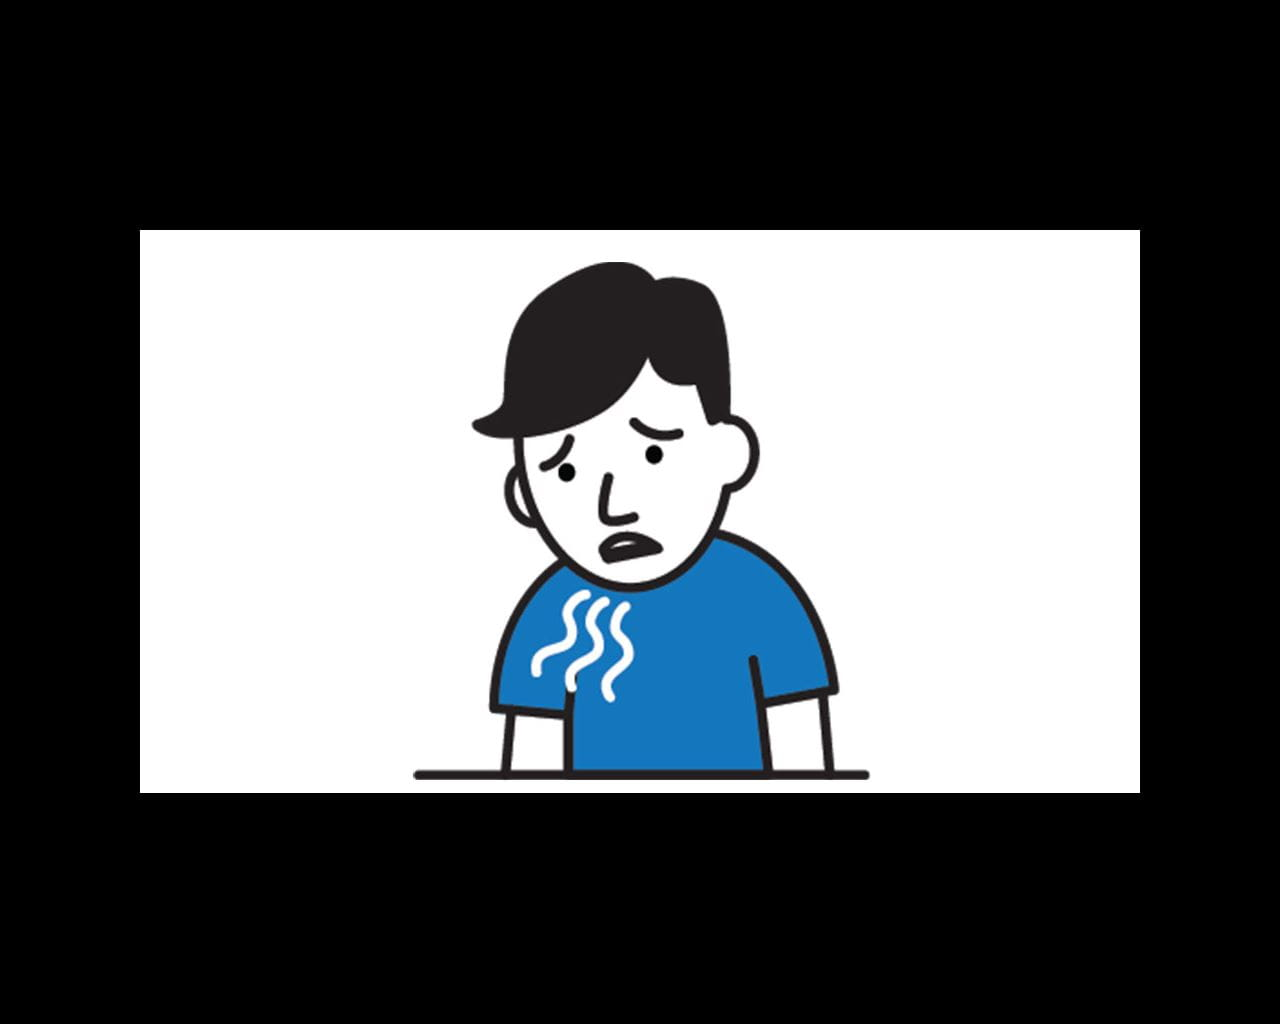 person with shortness of breath cartoon